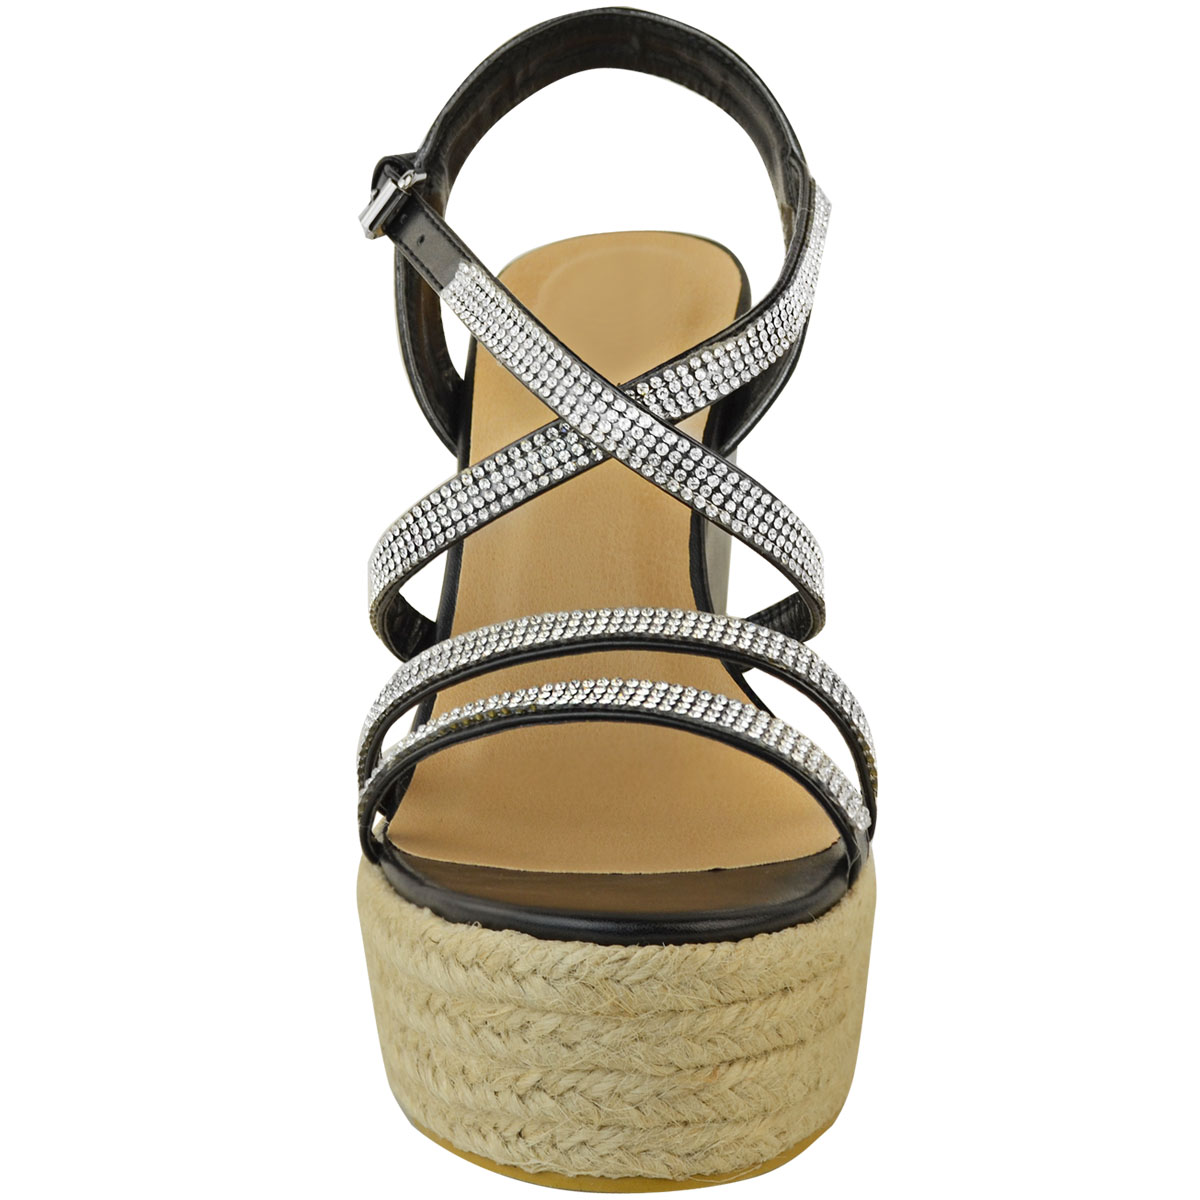 Womens-Ladies-Strappy-Diamante-Wedge-High-Heels-Sandals-Platforms-Shoes-Size-UK thumbnail 6